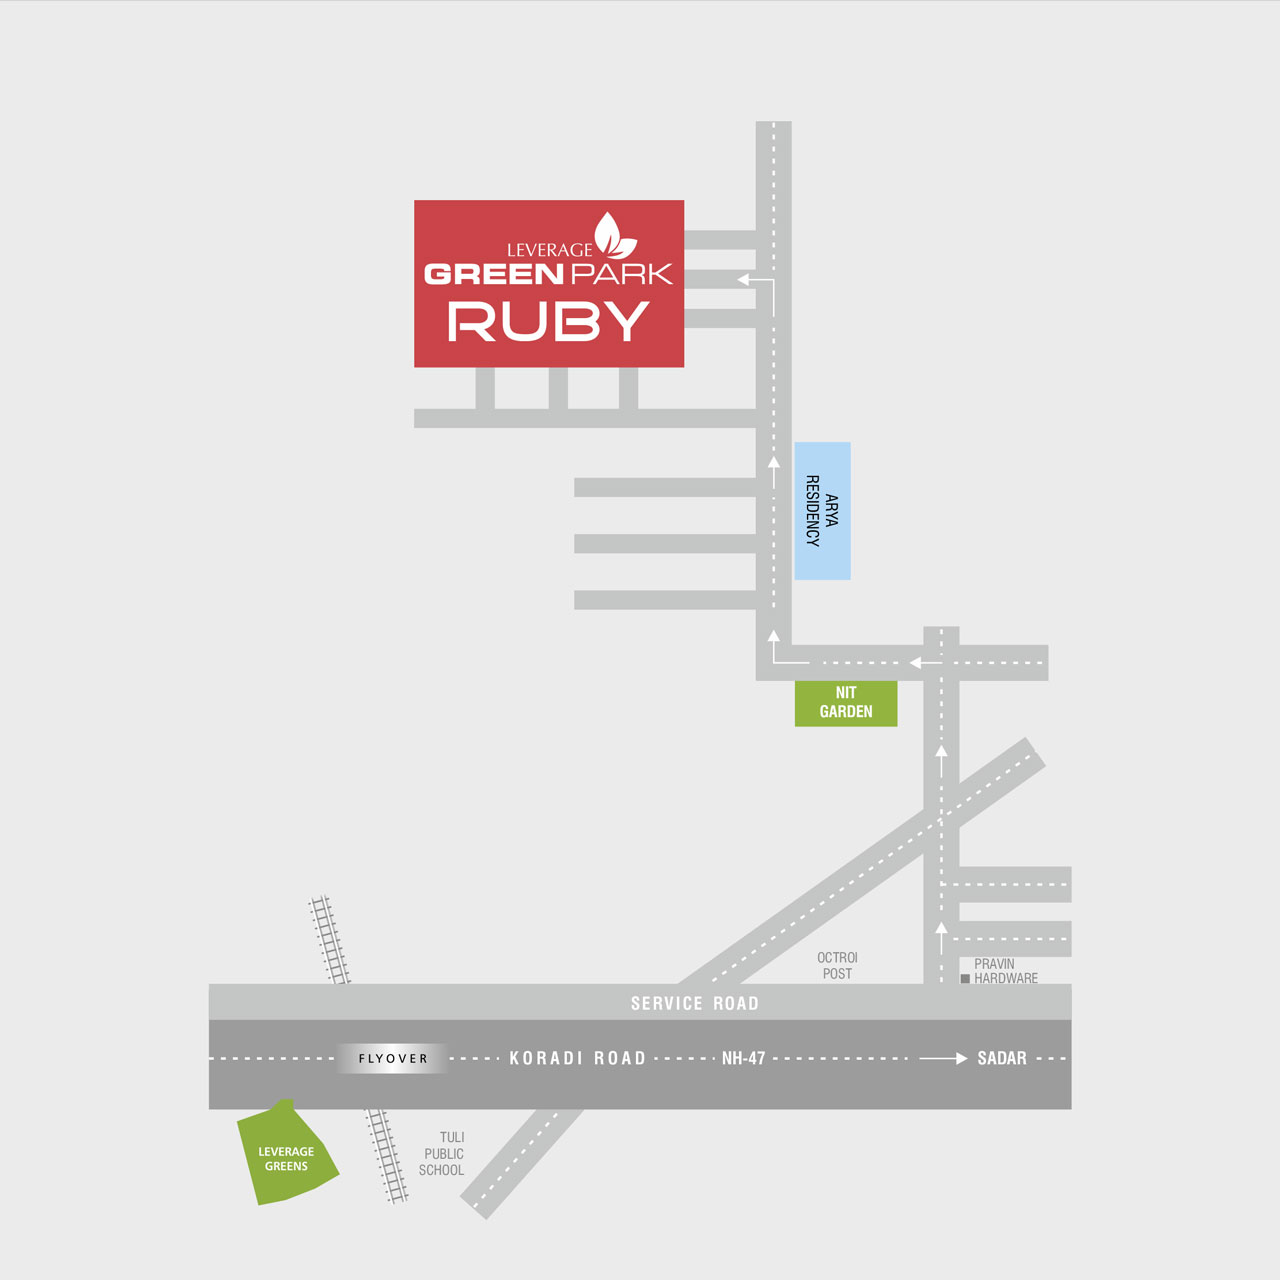 leverage-green-park-ruby-location-map